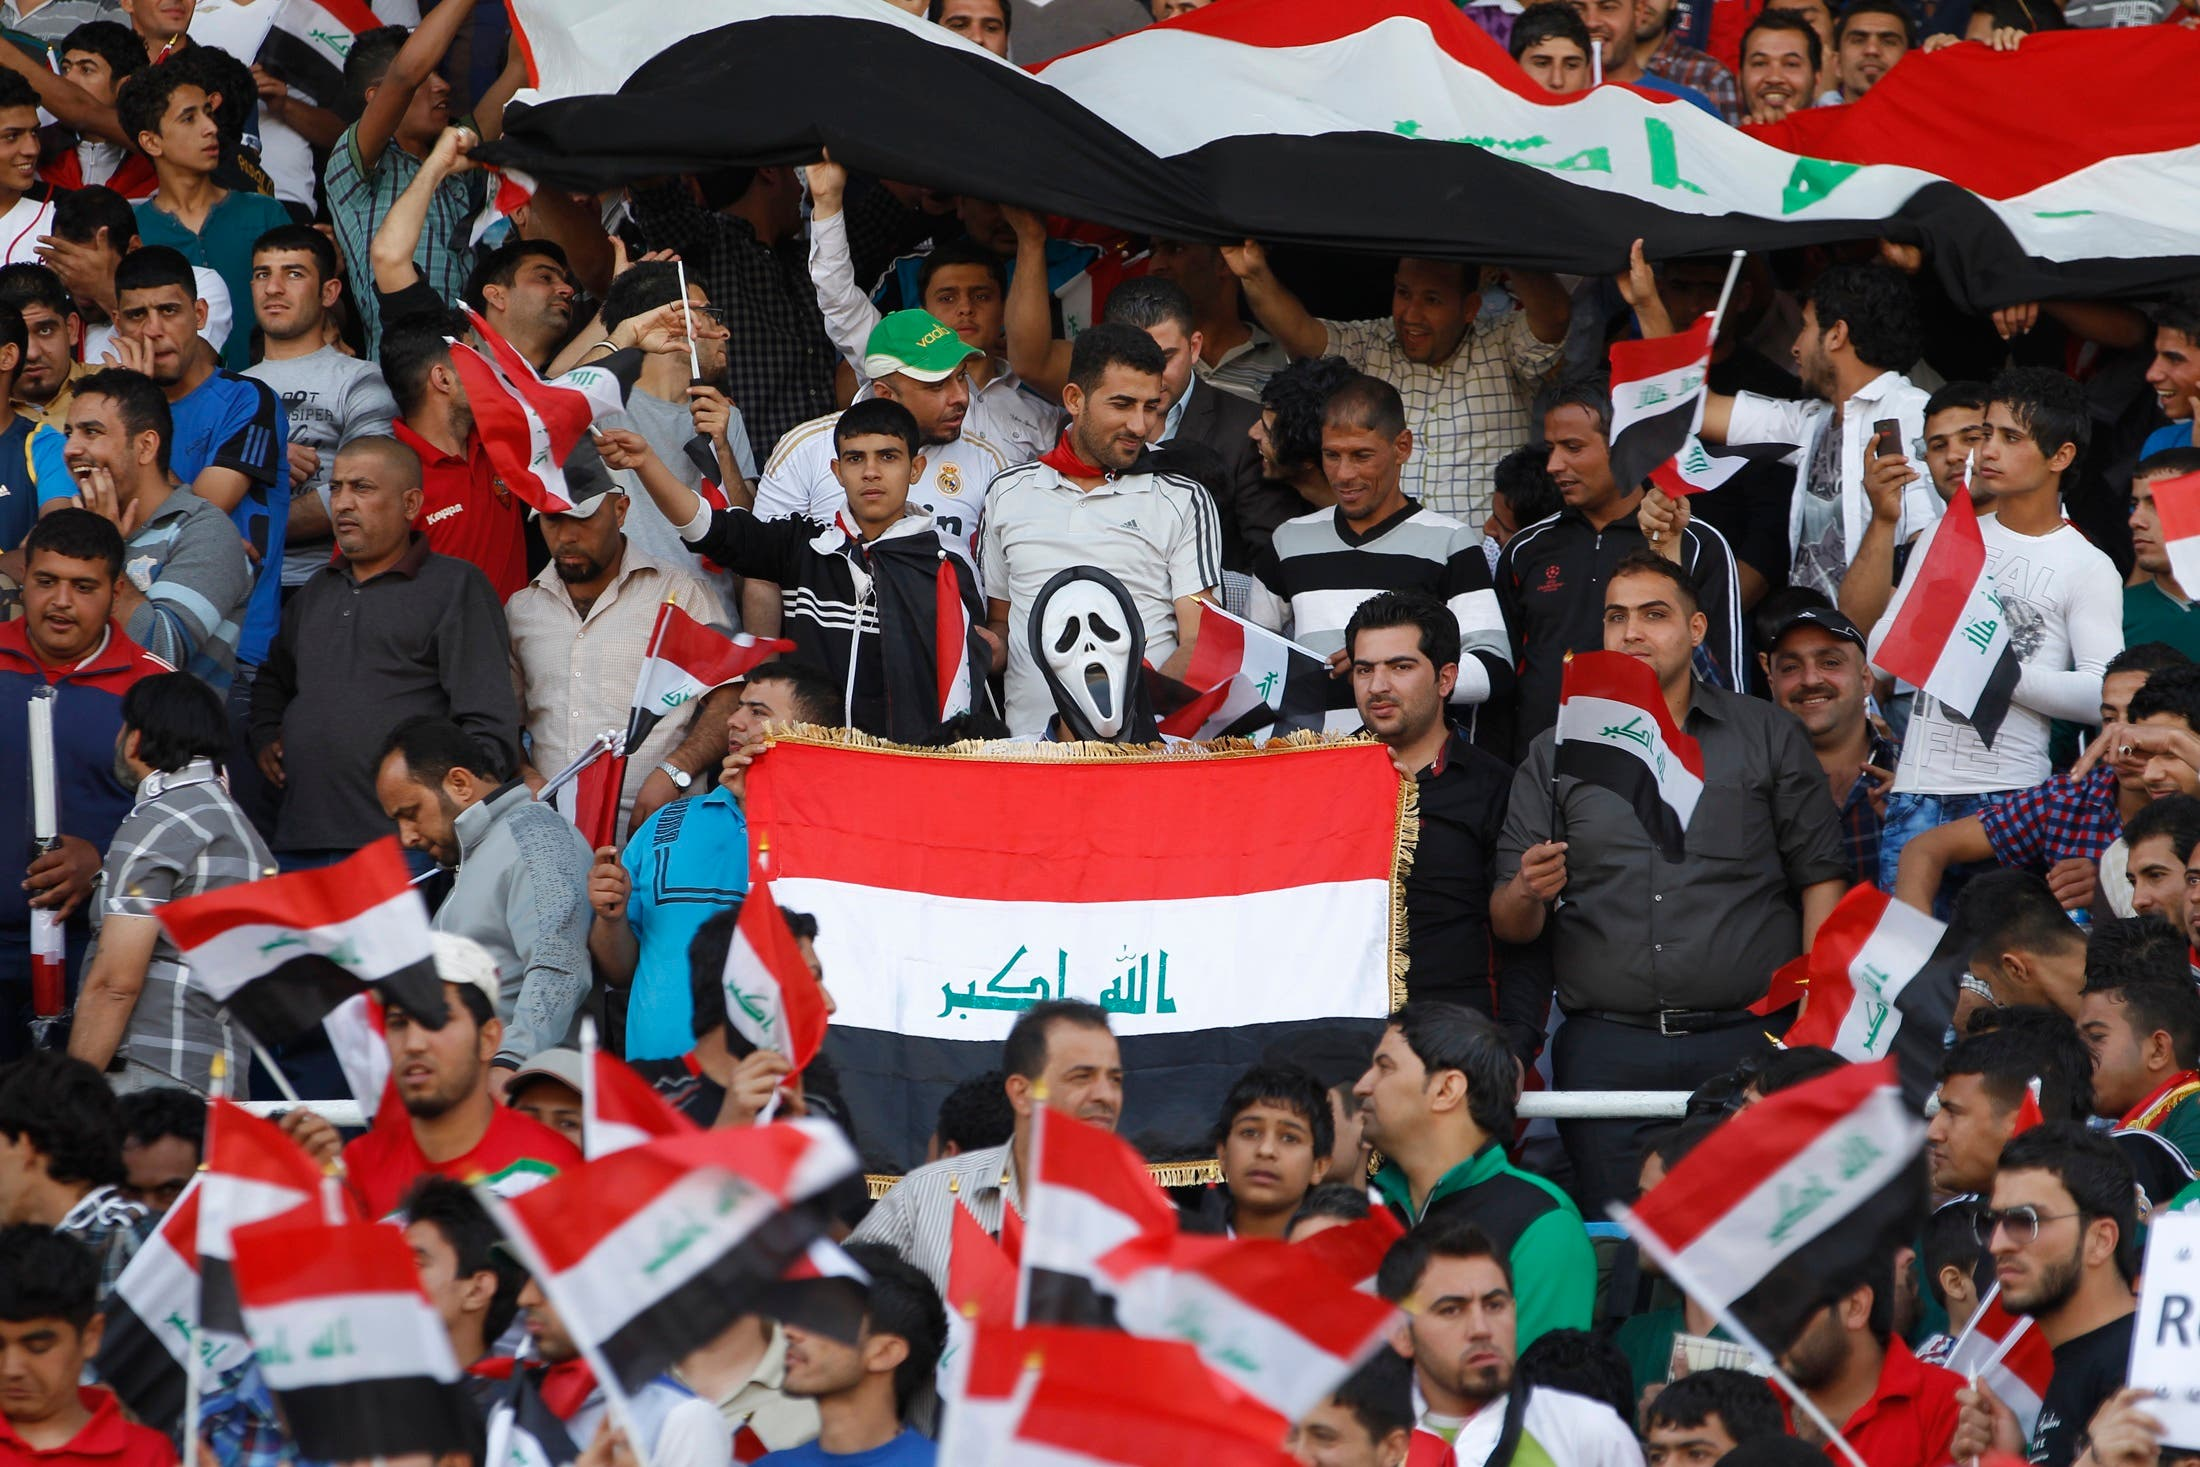 A fan wearing a Ghostface mask from Scream holds an Iraqi flag during Iraq's international friendly soccer match against Syria.(Reuters)